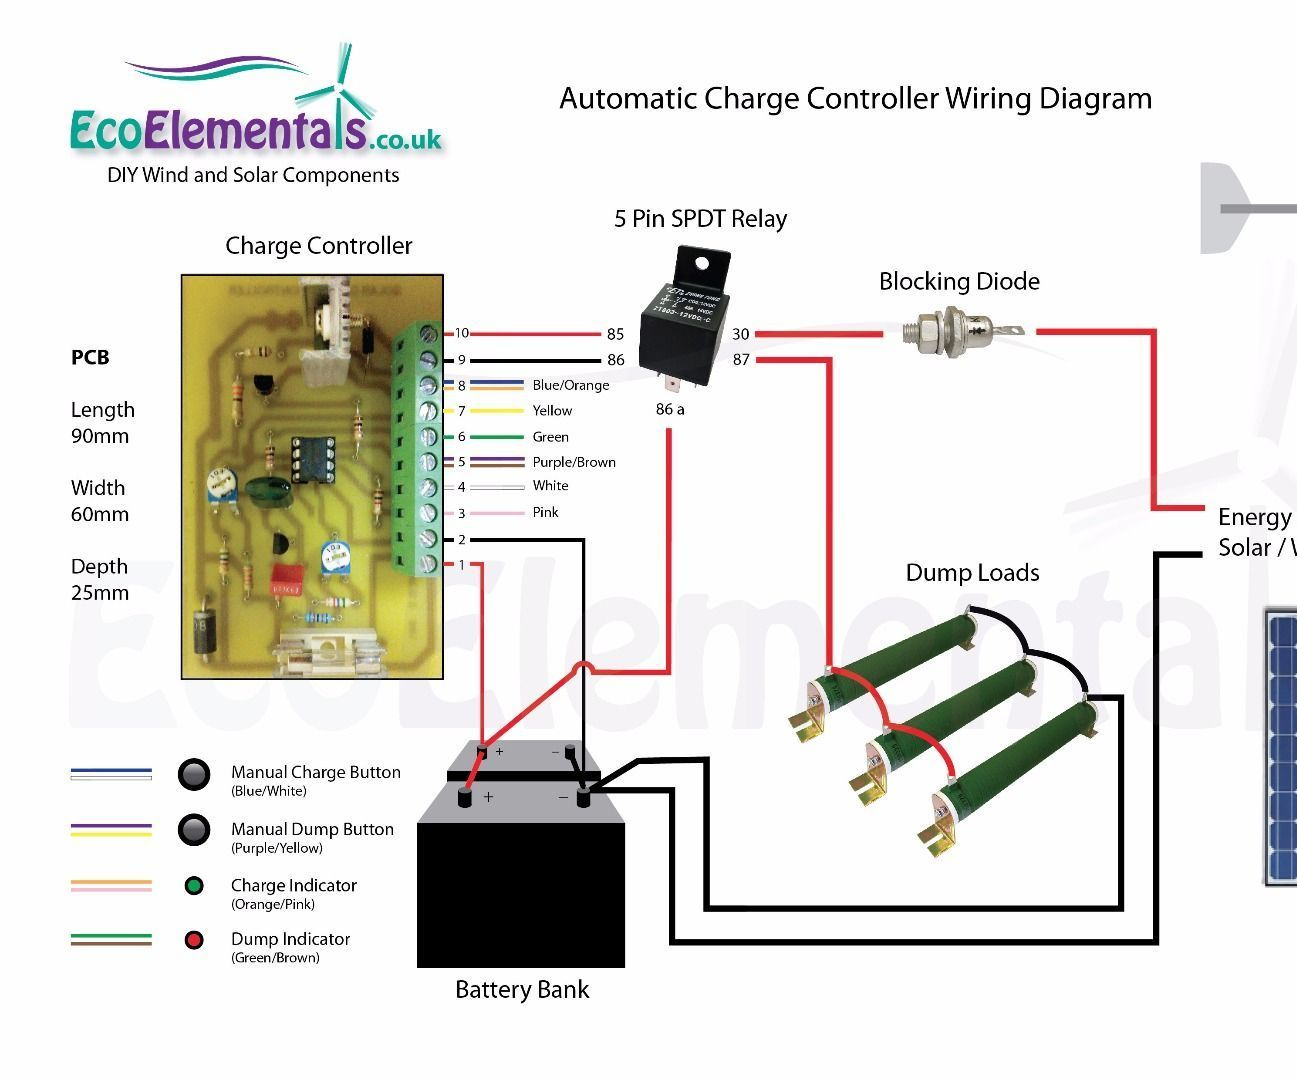 Wiring Diagram For Solar Charge Controller - Enthusiast Wiring ...